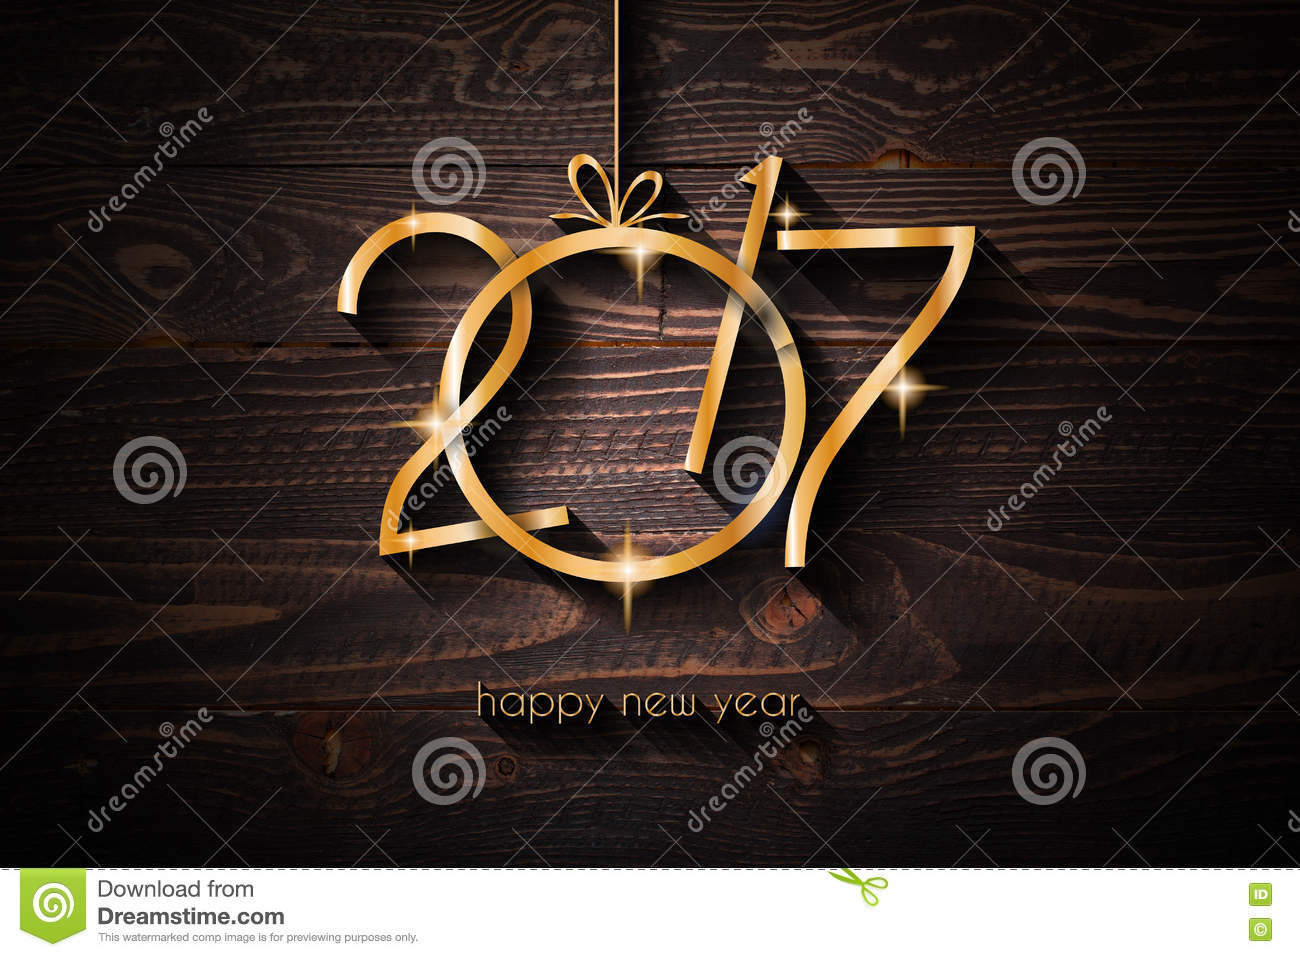 2017 happy new year restaurant menu template background